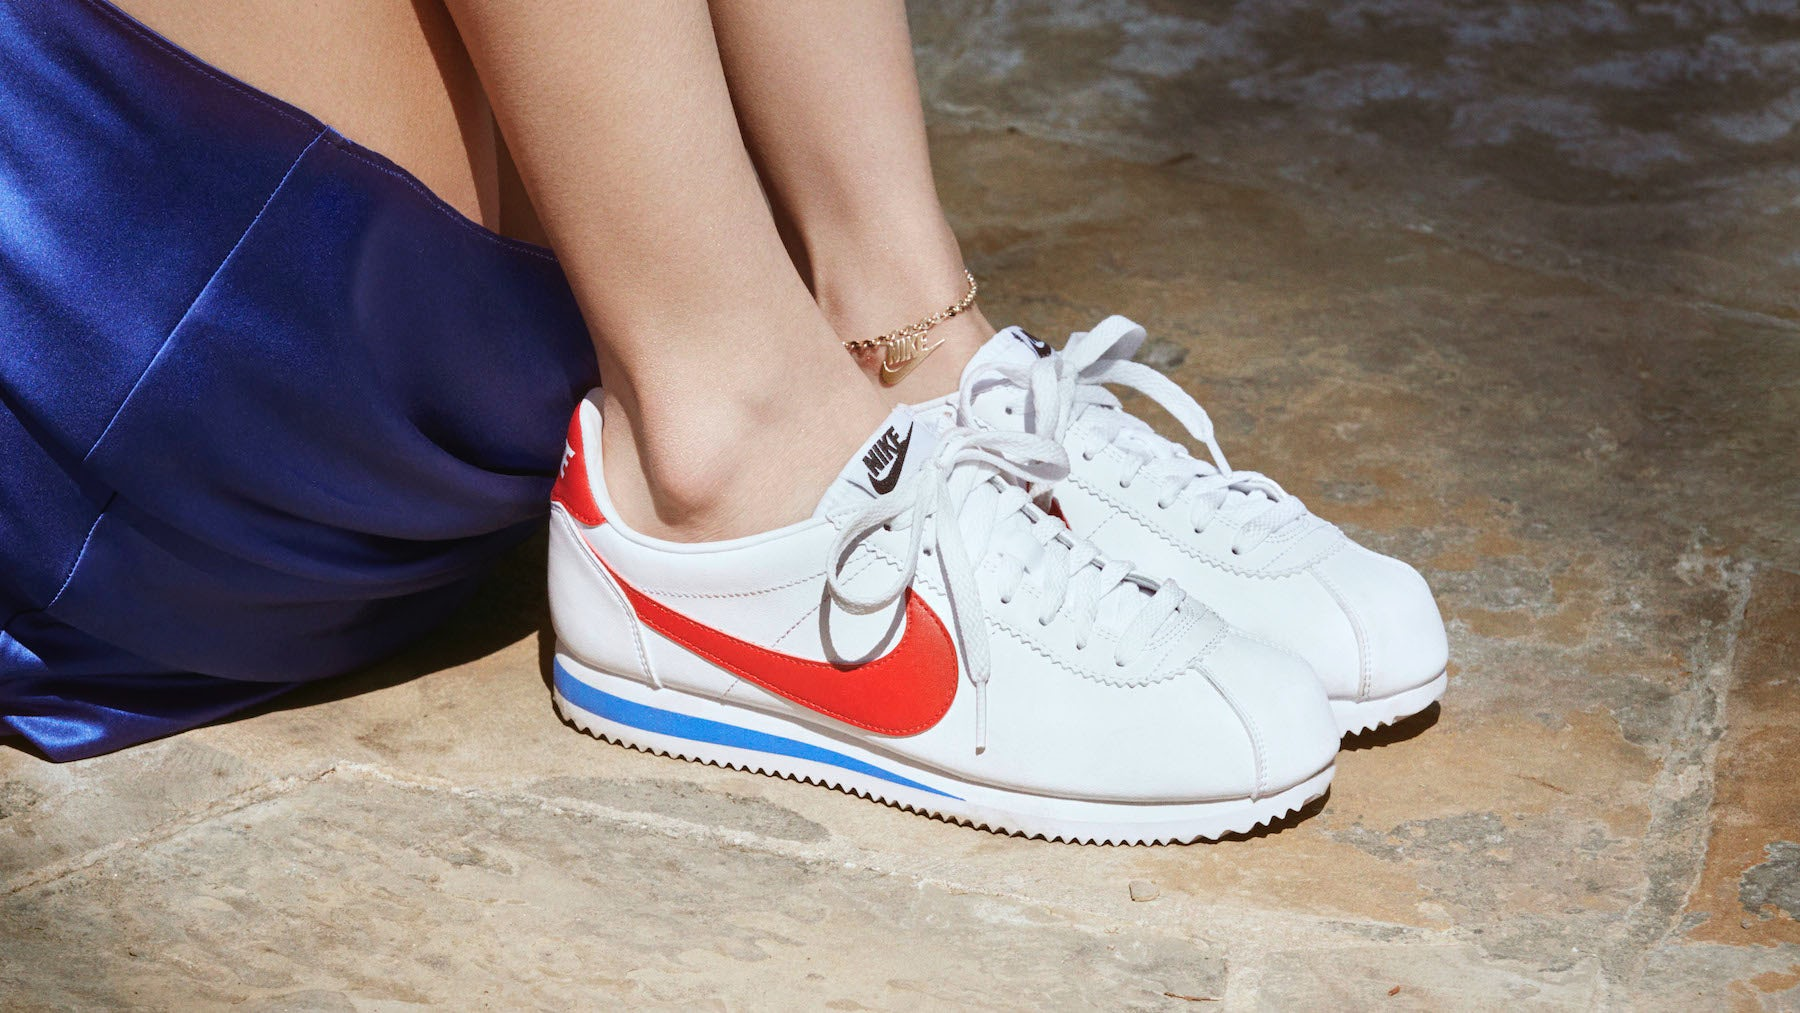 Nike Cortez sneakers | Source: Courtesy